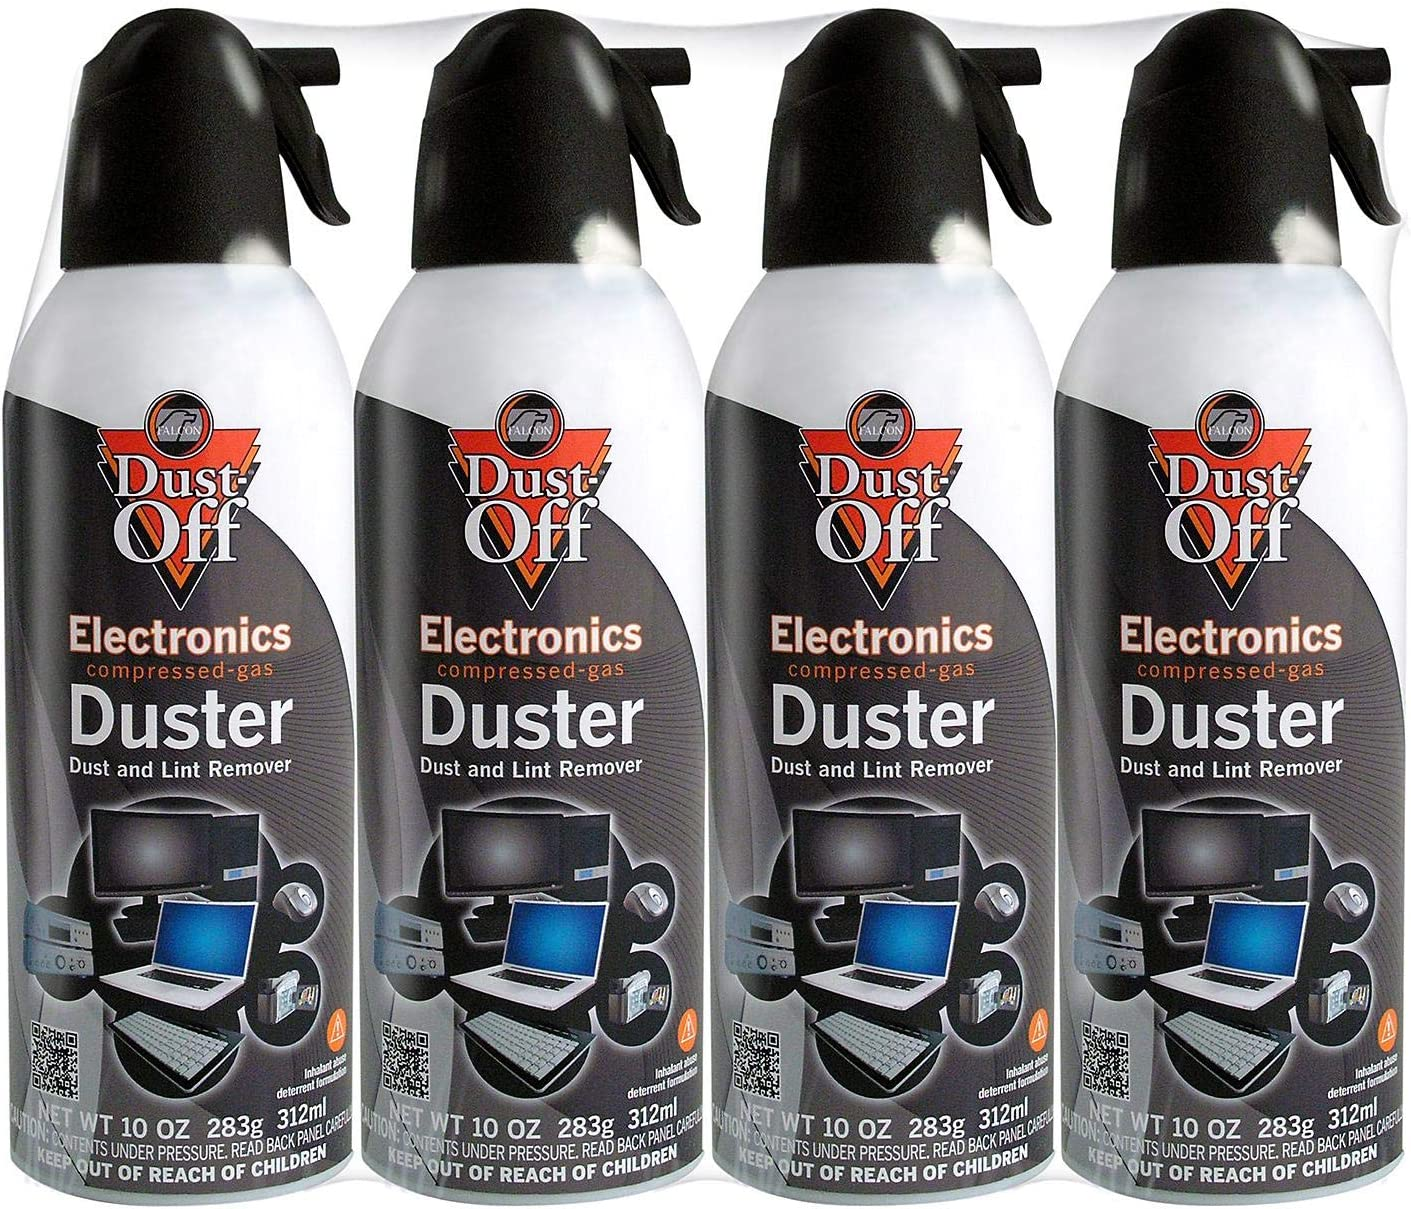 12 pk Compressed Air Computer TV Gas Cans Duster 10 oz Dust Off Keyboard Laptop